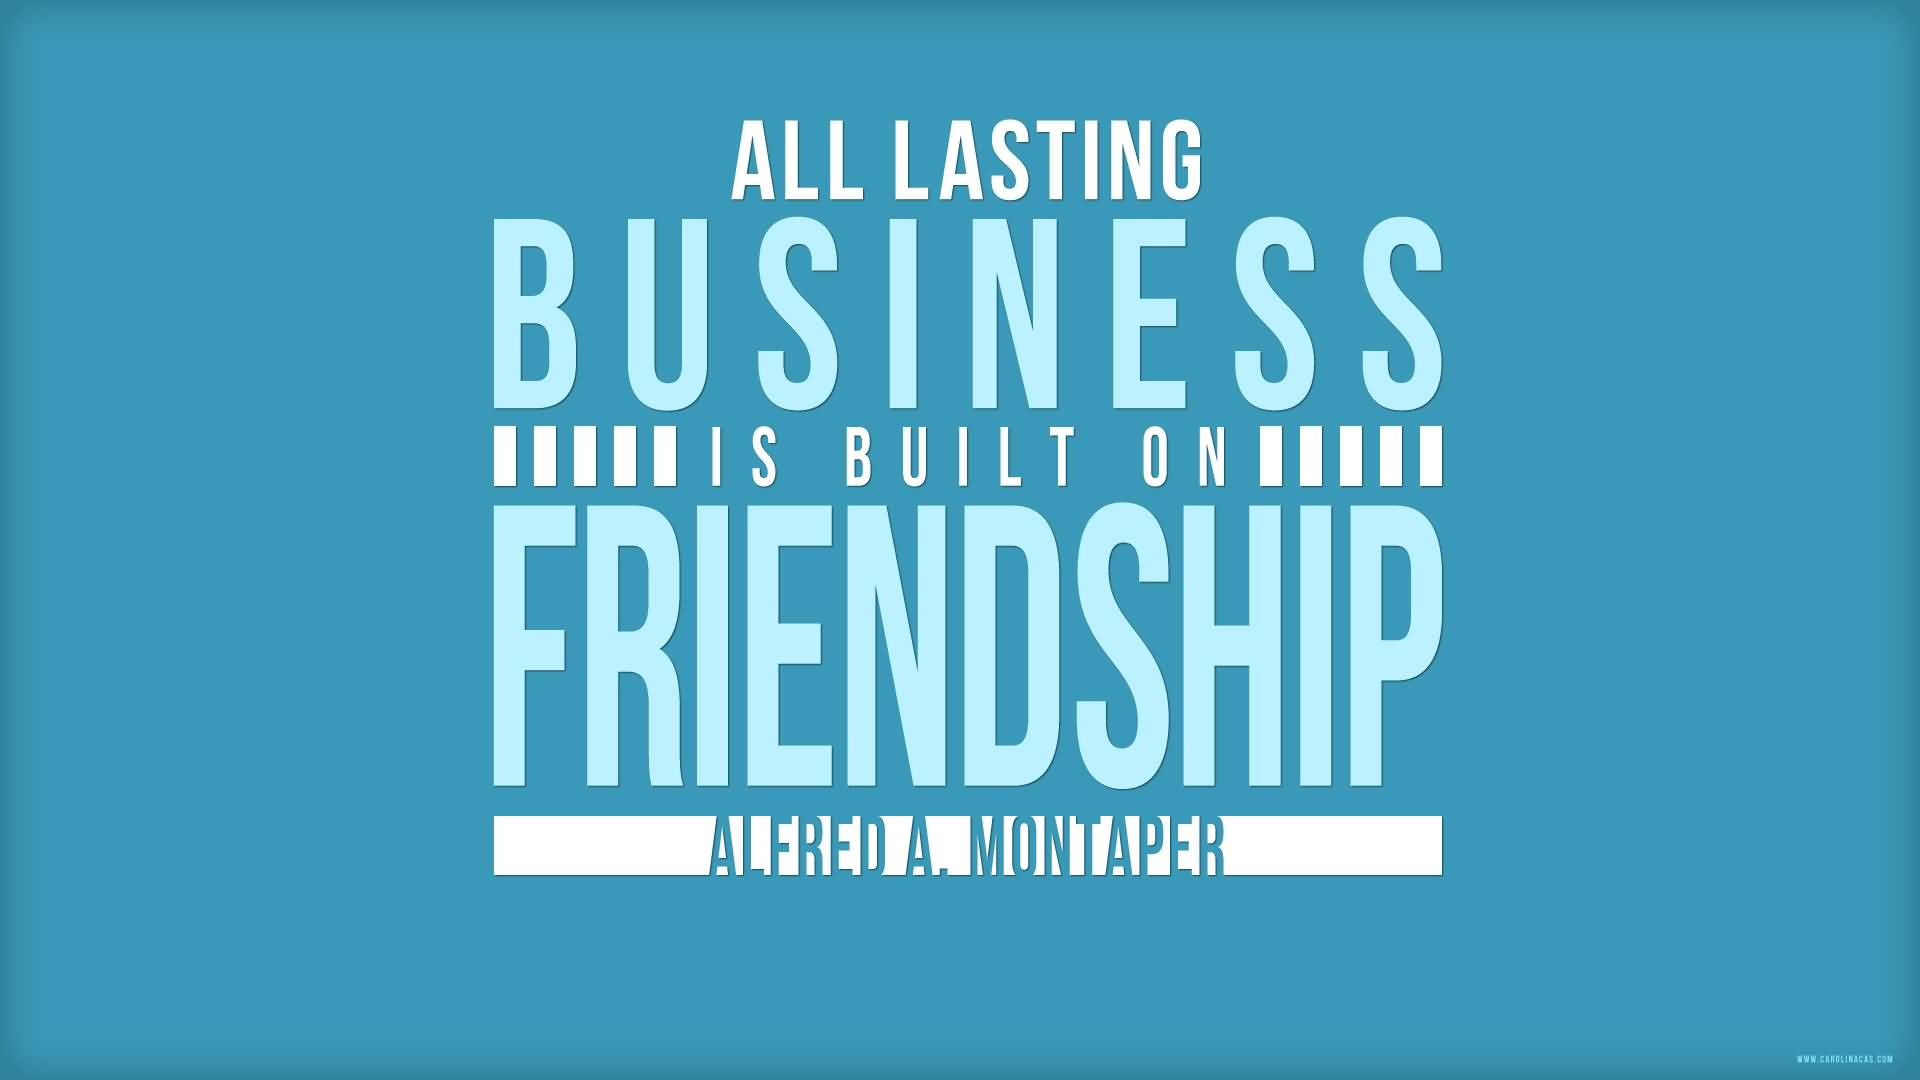 Business Sayings all lasting business is built on friendship alfred a ,montaper